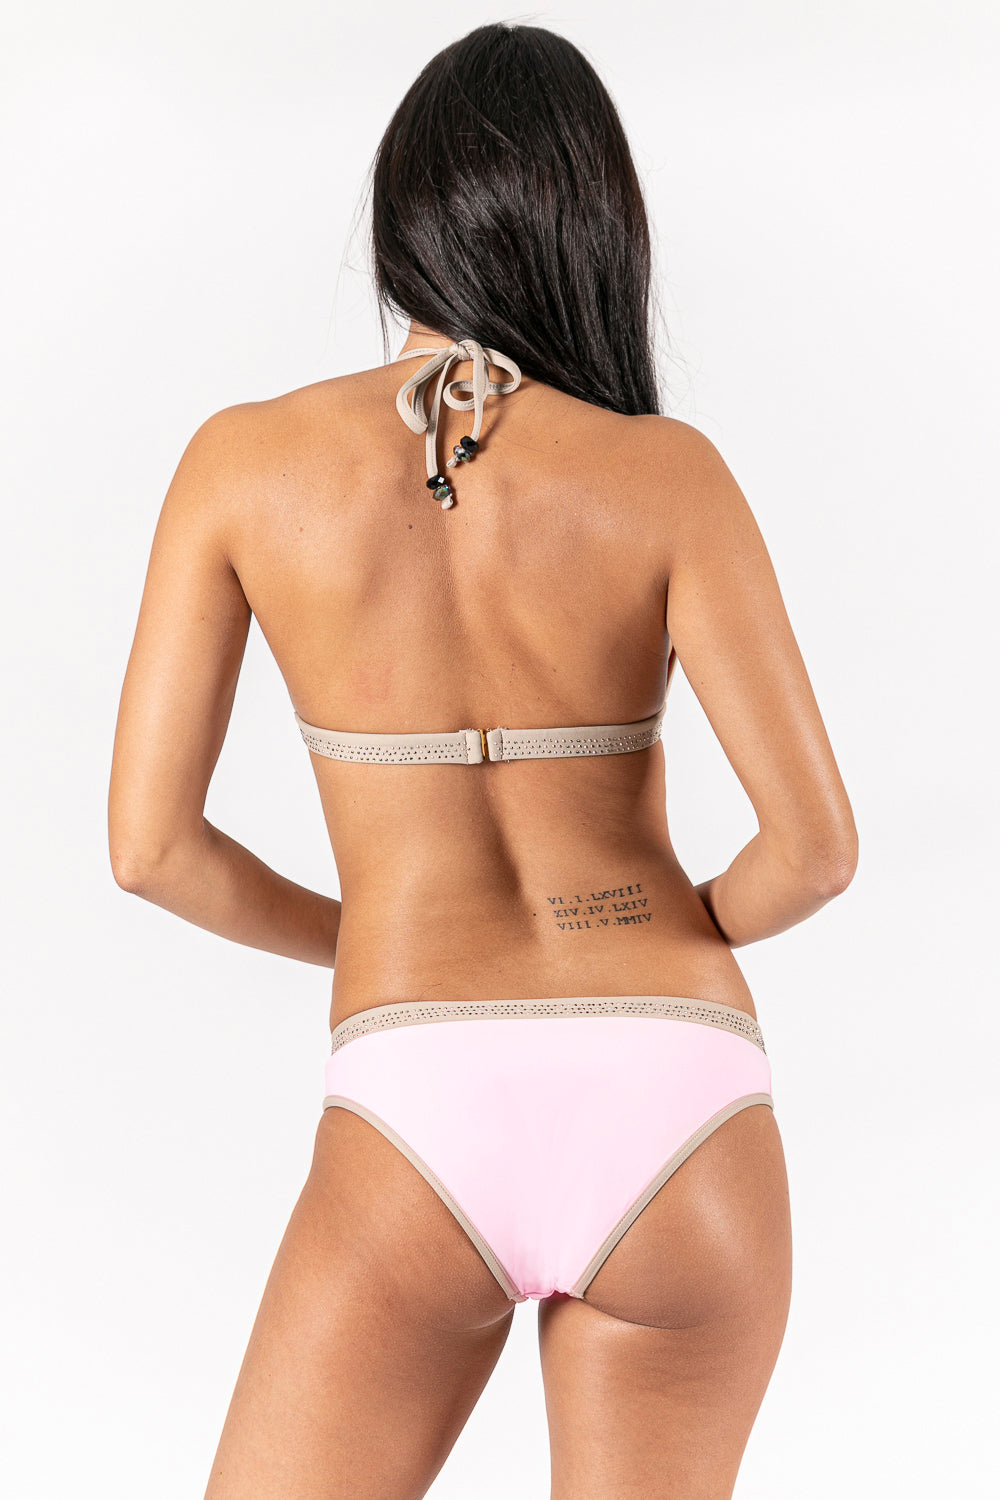 Women bikini in color pink and nude with metal trimmings details . Sustainable Swimwear made from recycled plastics and bottles by BRISSUS